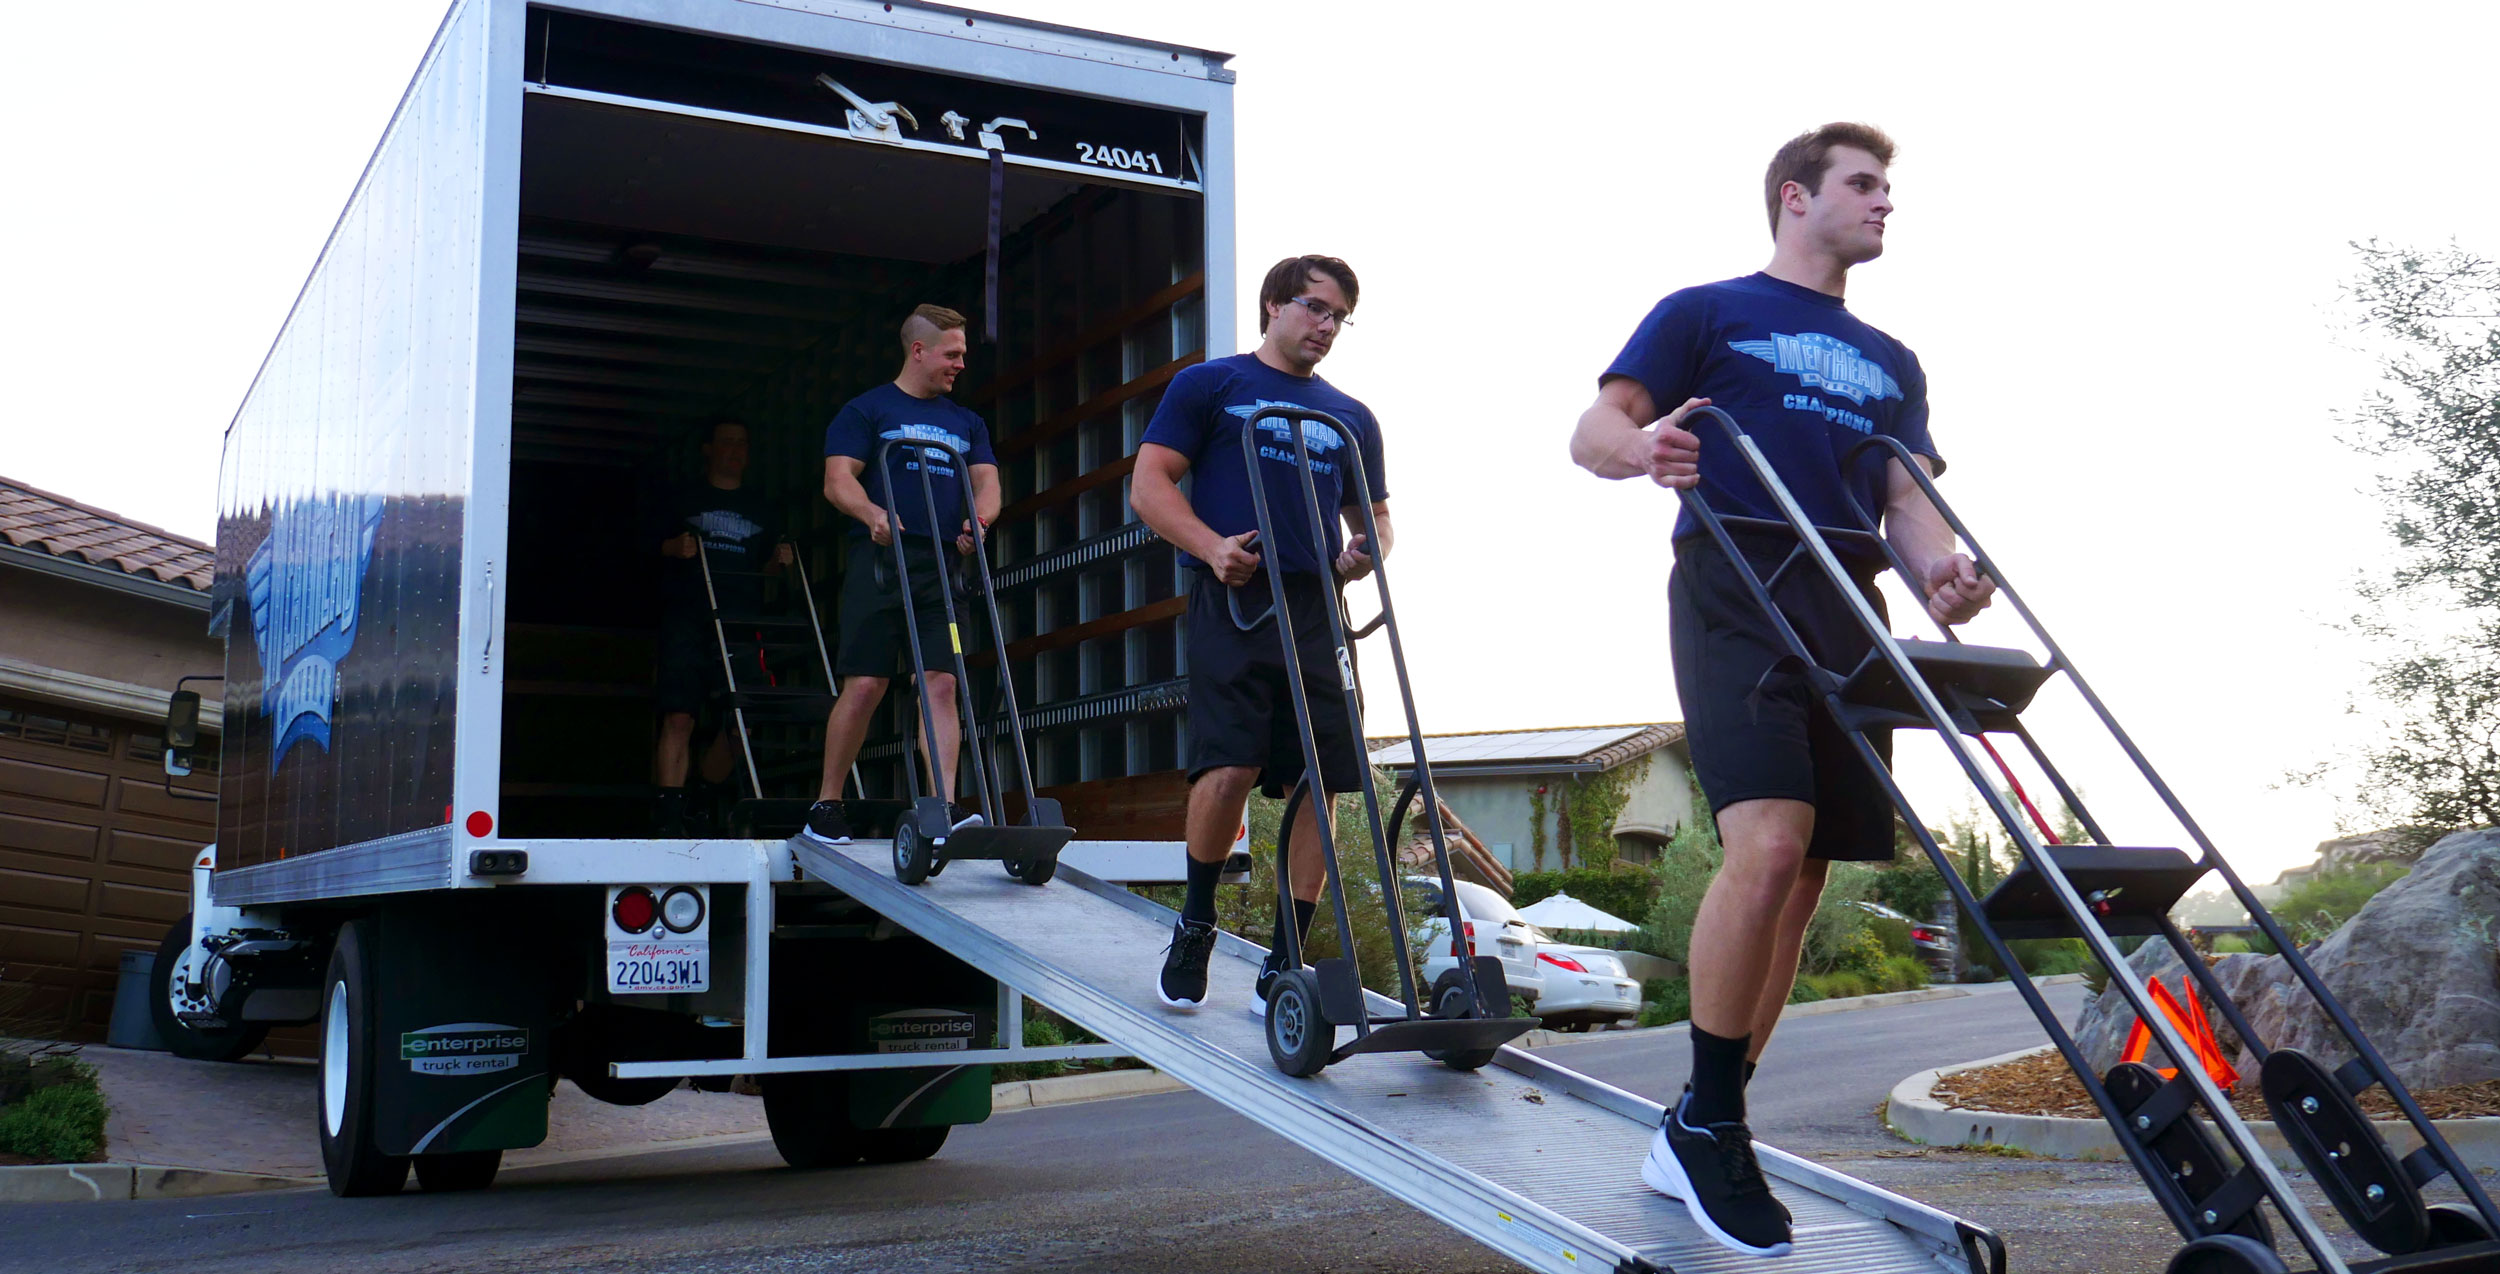 Meathead Movers walking out of a truck after loading it with boxes.